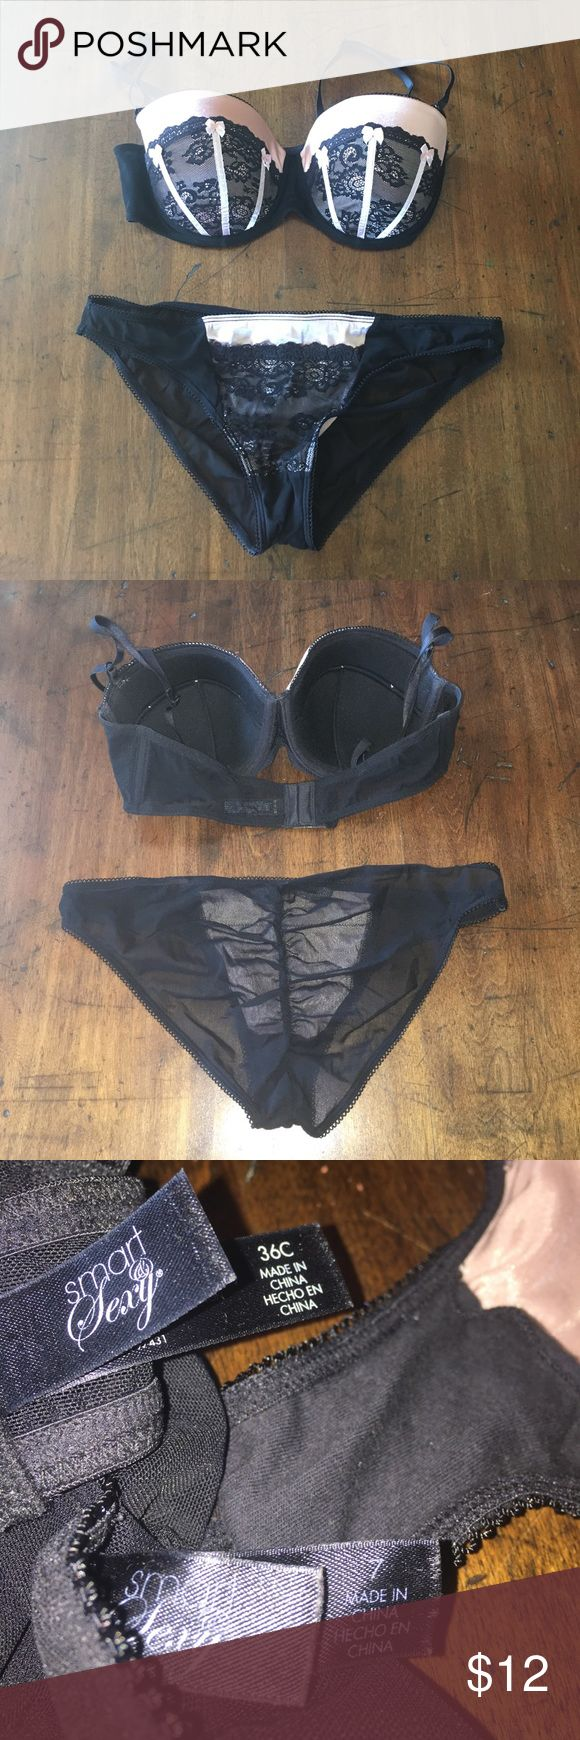 NWOT 36C/7 bra & panty set Pink & black bra & panty set. NWOT. Lace and bow detailing. Molded cups. Hook 6 hook closure on bra with adjustable straps. Underwire. No push-up. Cheeky gathered bottoms. Black see thru material. Bikini style. Fits like a medium 4/6. Clean. smart & sexy Intimates & Sleepwear Bras